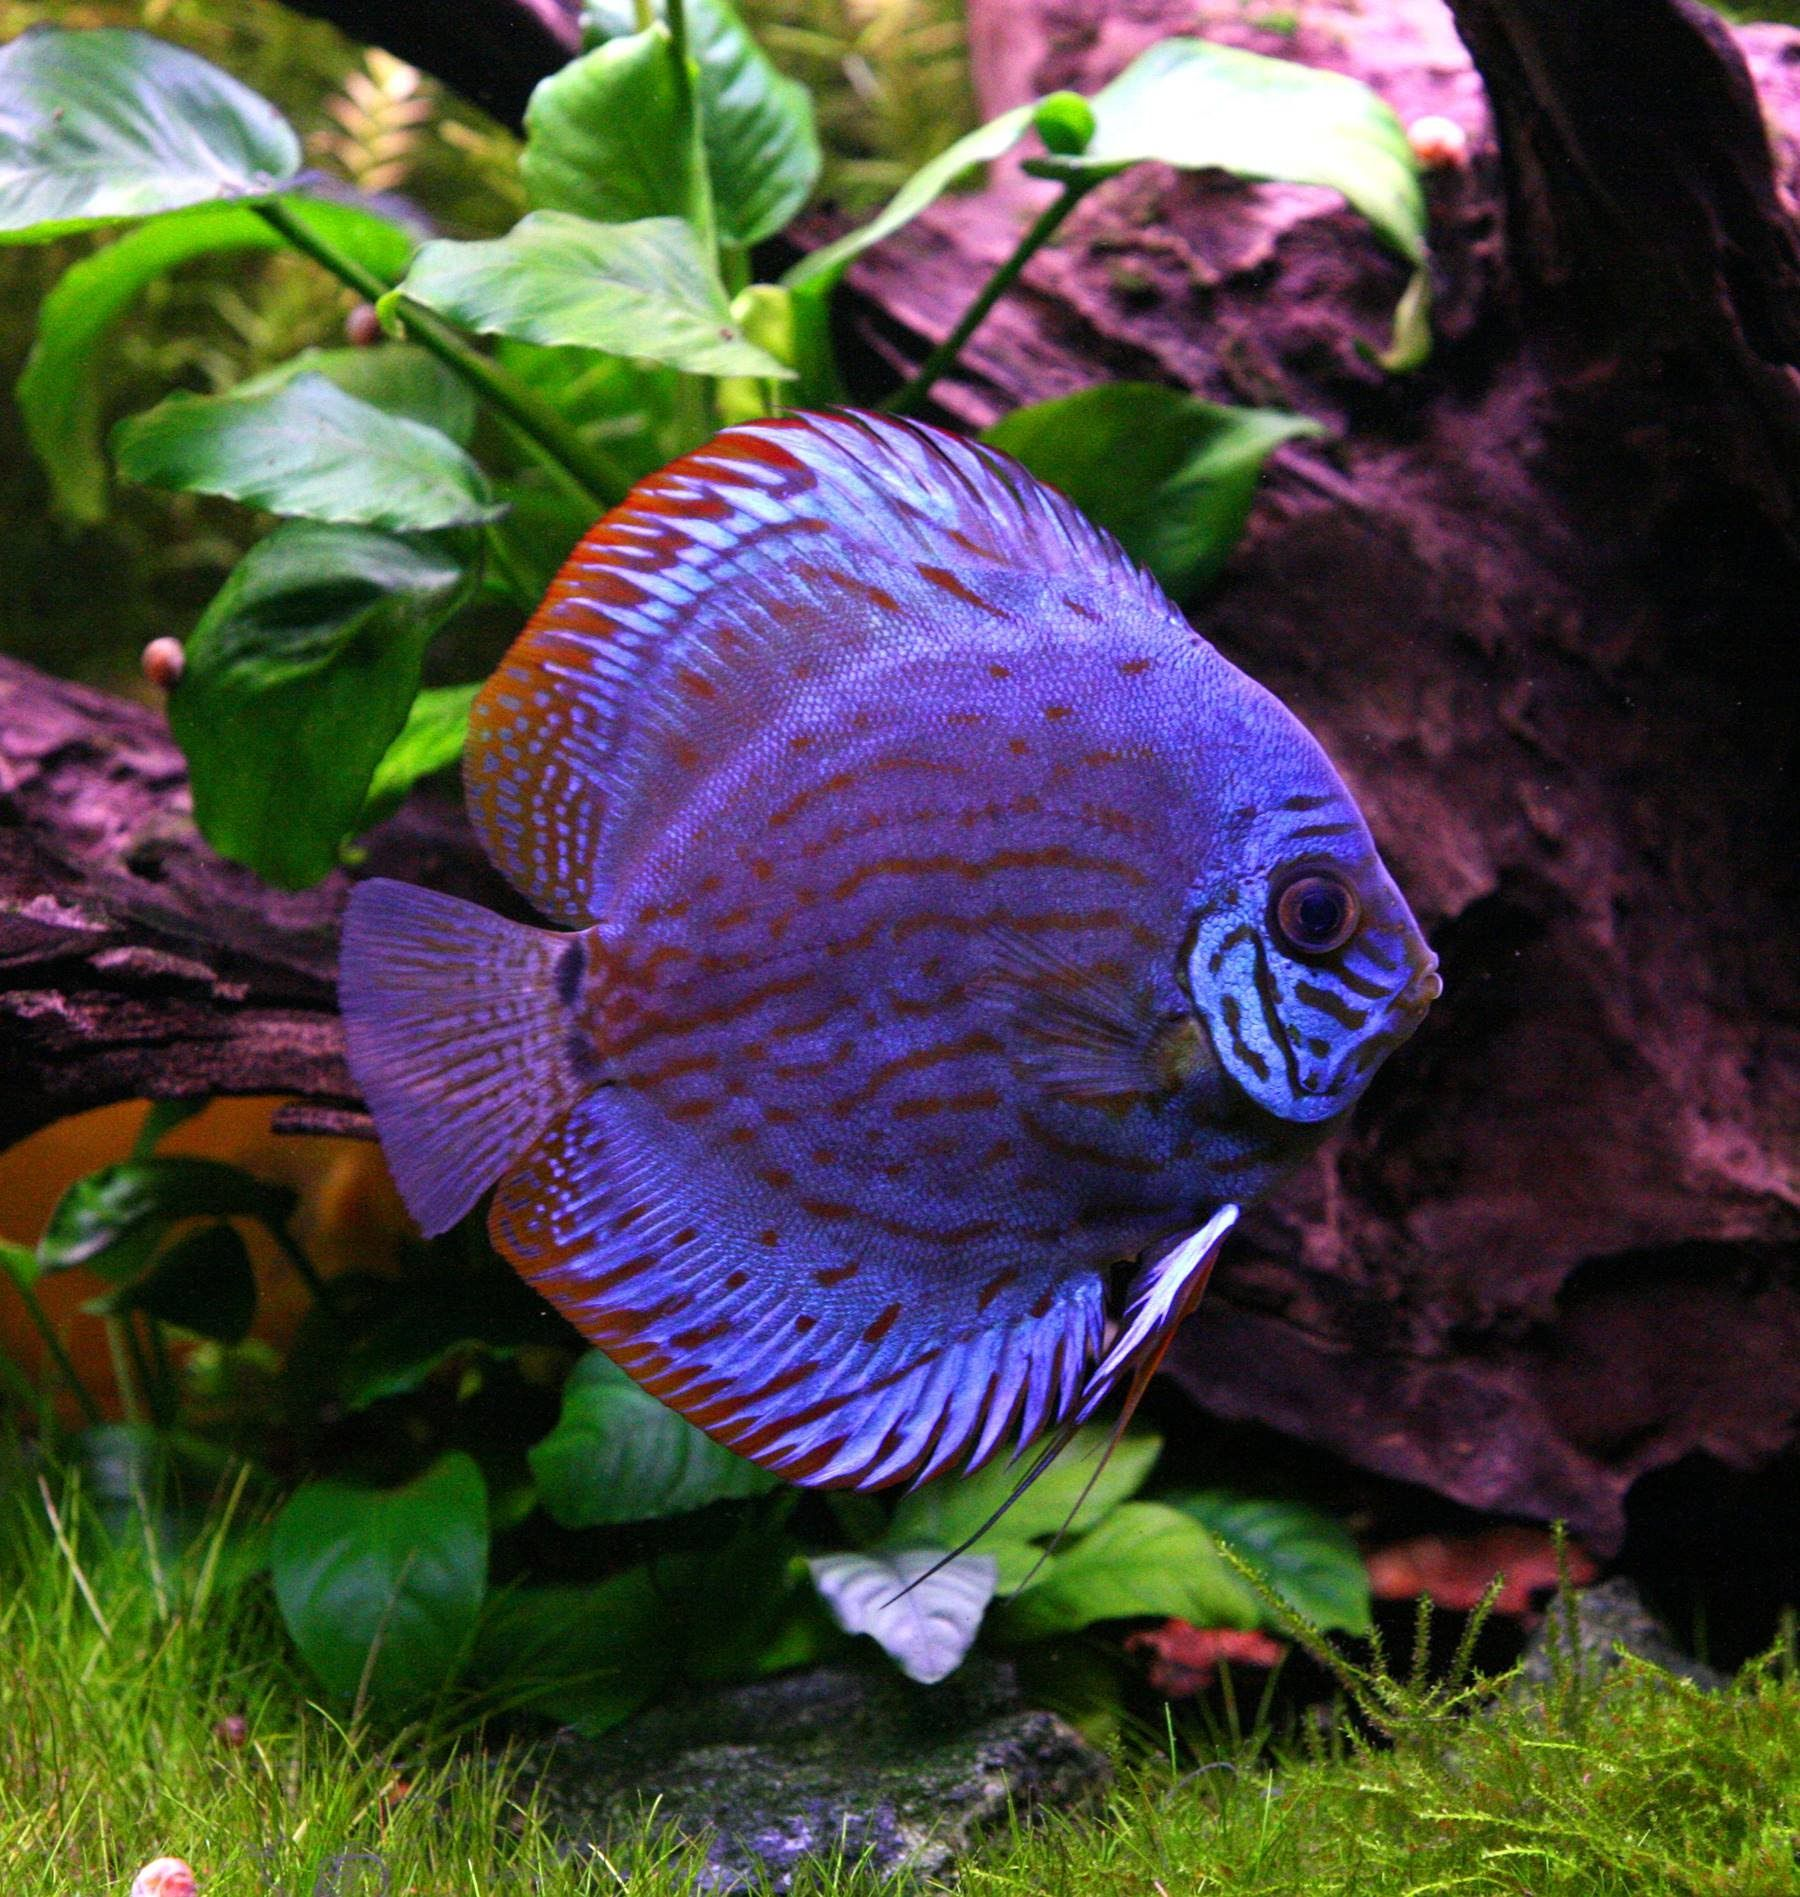 Very colorful freshwater aquarium fish - The Discus Fish Is A Very Colorful Flat Fish That Many Fish Lovers And Aquarium Enthusiasts